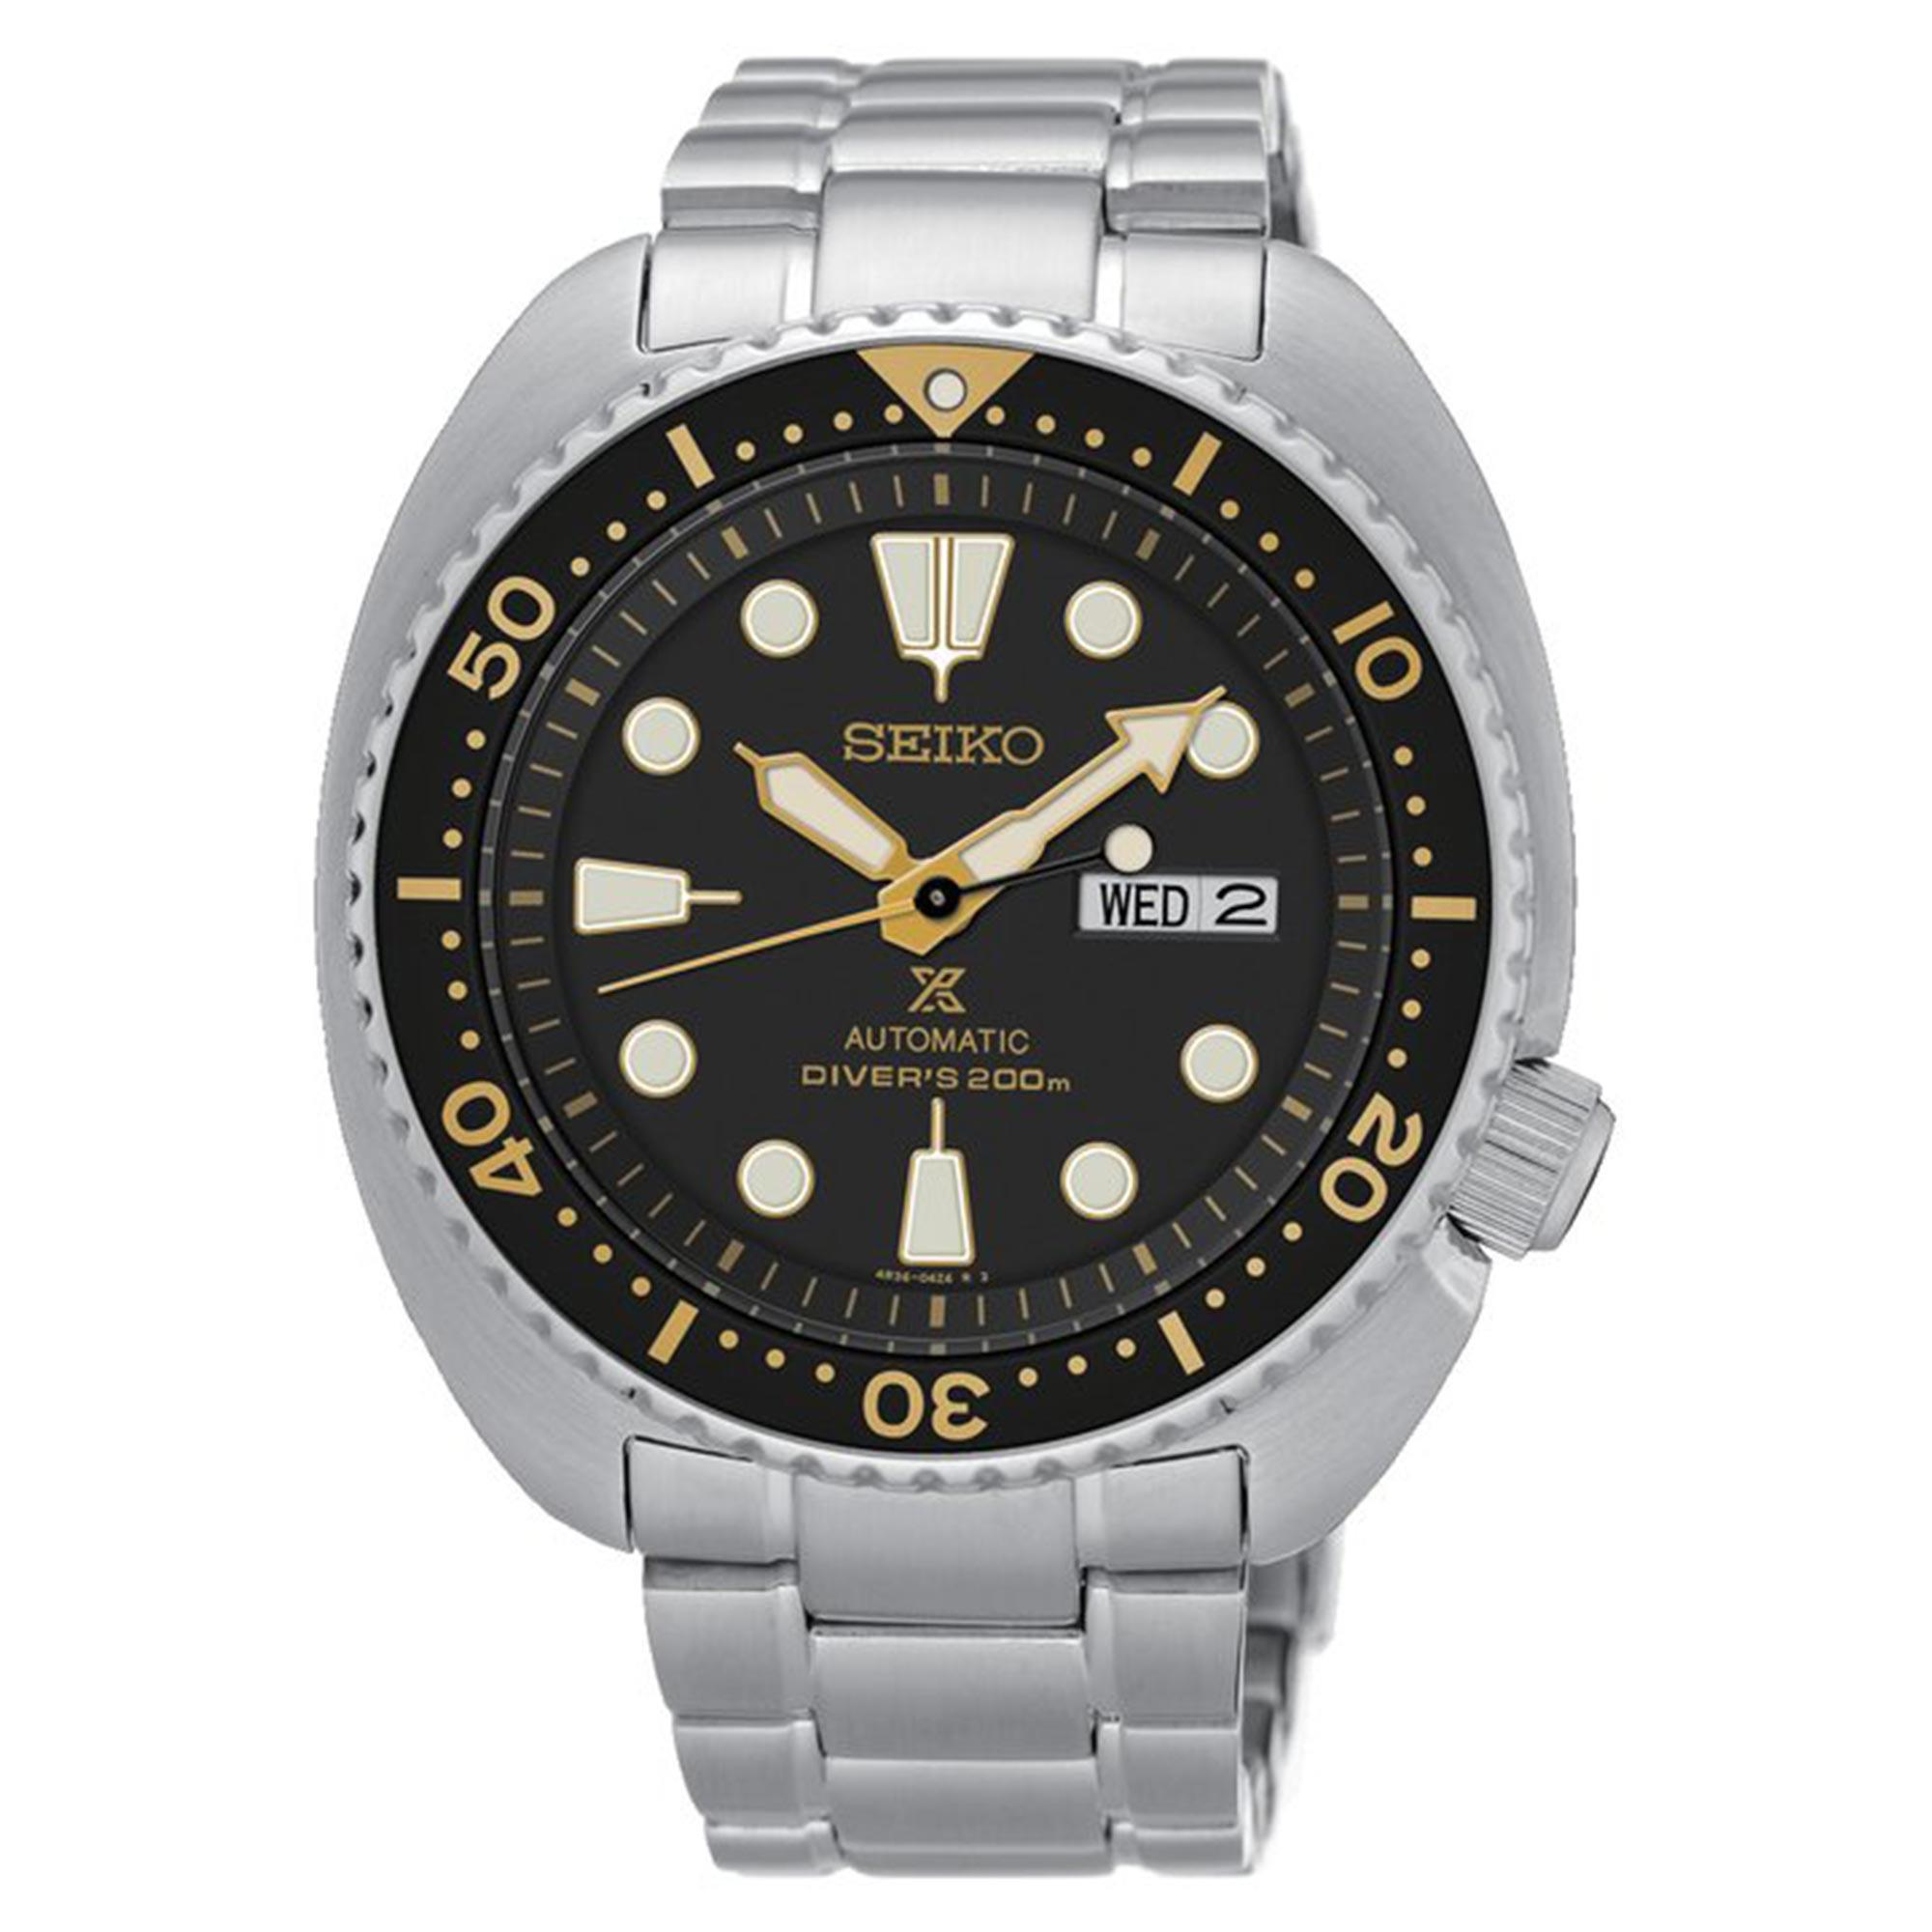 Seiko Prospex Automatic Black Dial 'Turtle Case' Silver Stainless Steel Diver's Men's Watch SRP775K1 RRP £399